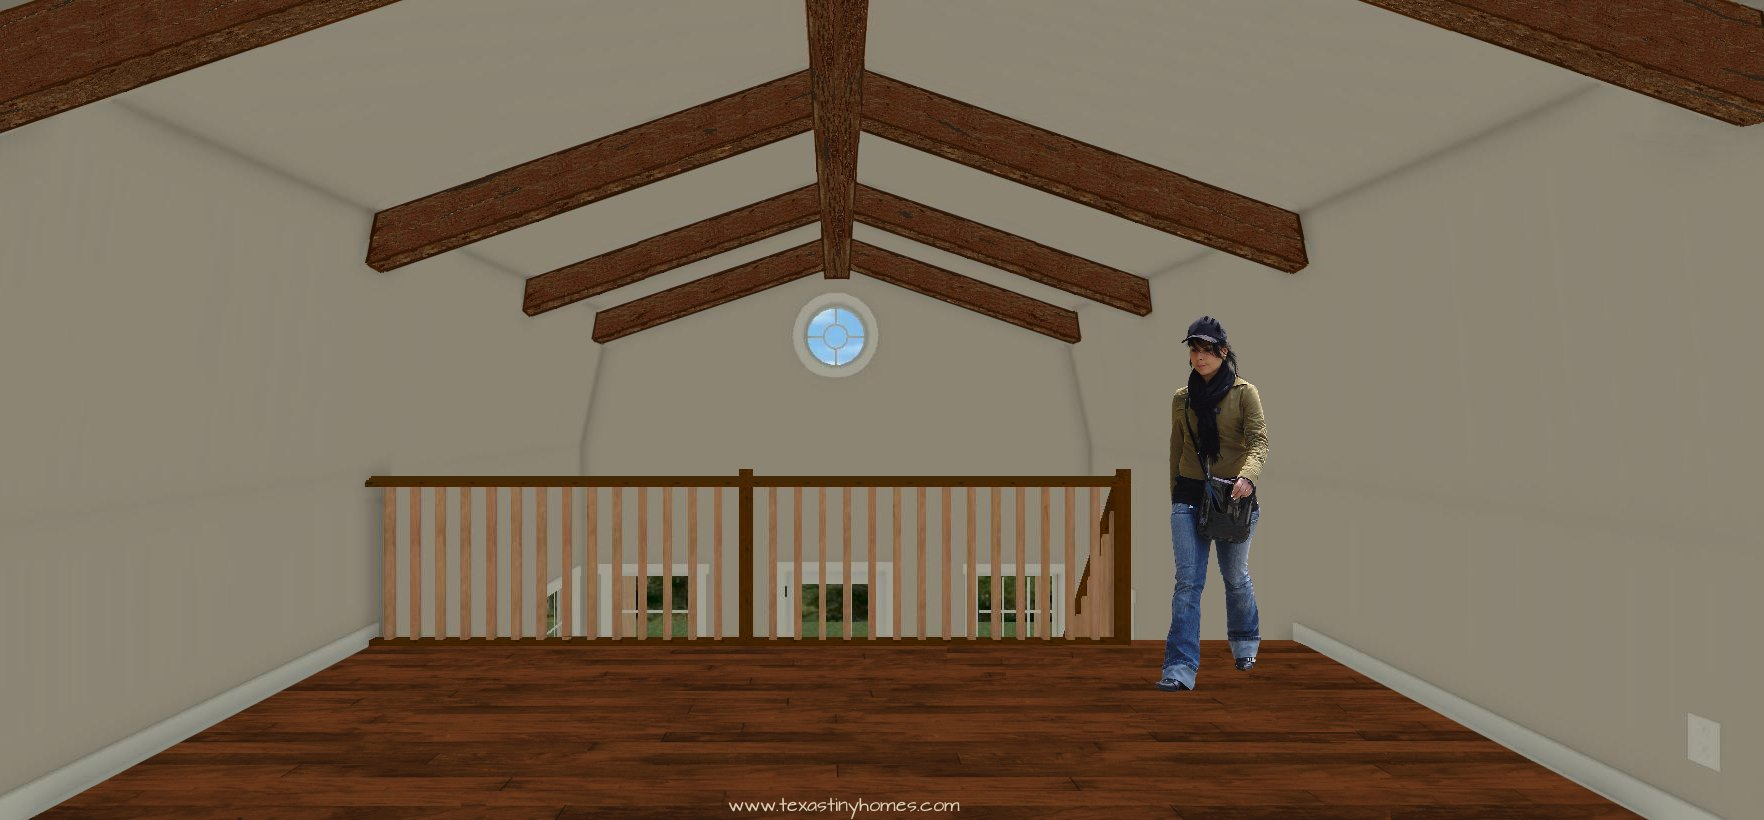 Tiny House Plans, Small House Plans, Micro Home Plans, Guest House Plans, Mother In Law Suites, Mother In Law House Plans, Small Homes Texas, Texas Tiny Homes, Fort Worth Tiny Homes,